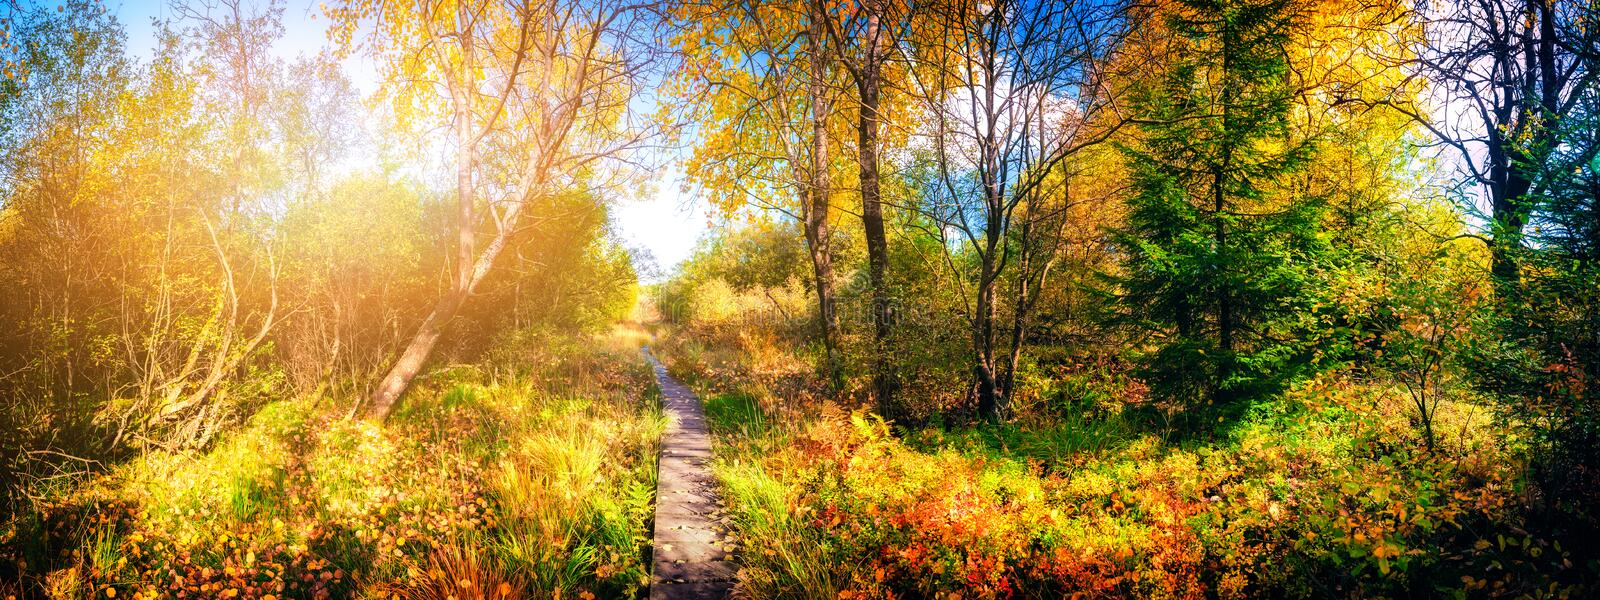 Panoramic autumn landscape with country path. Fall nature background royalty free stock images